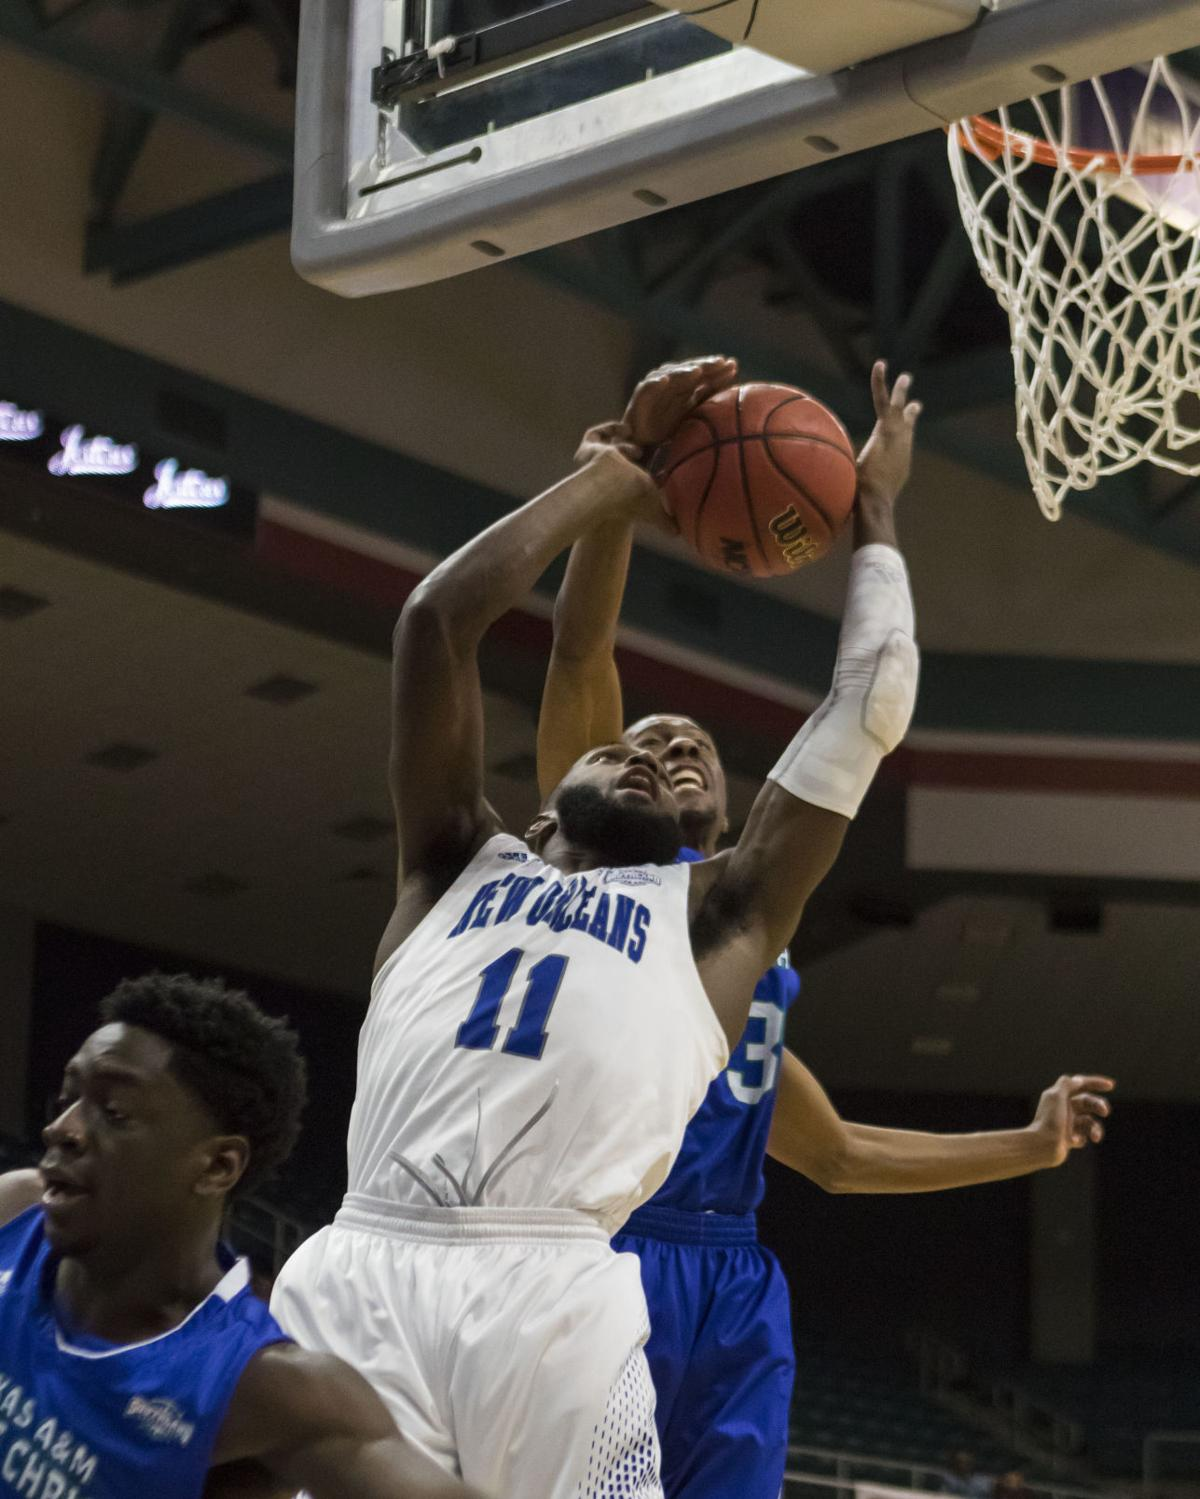 Uno Wheelchair College Tournament: Let's Dance! UNO To Face Mount St. Mary's In NCAA